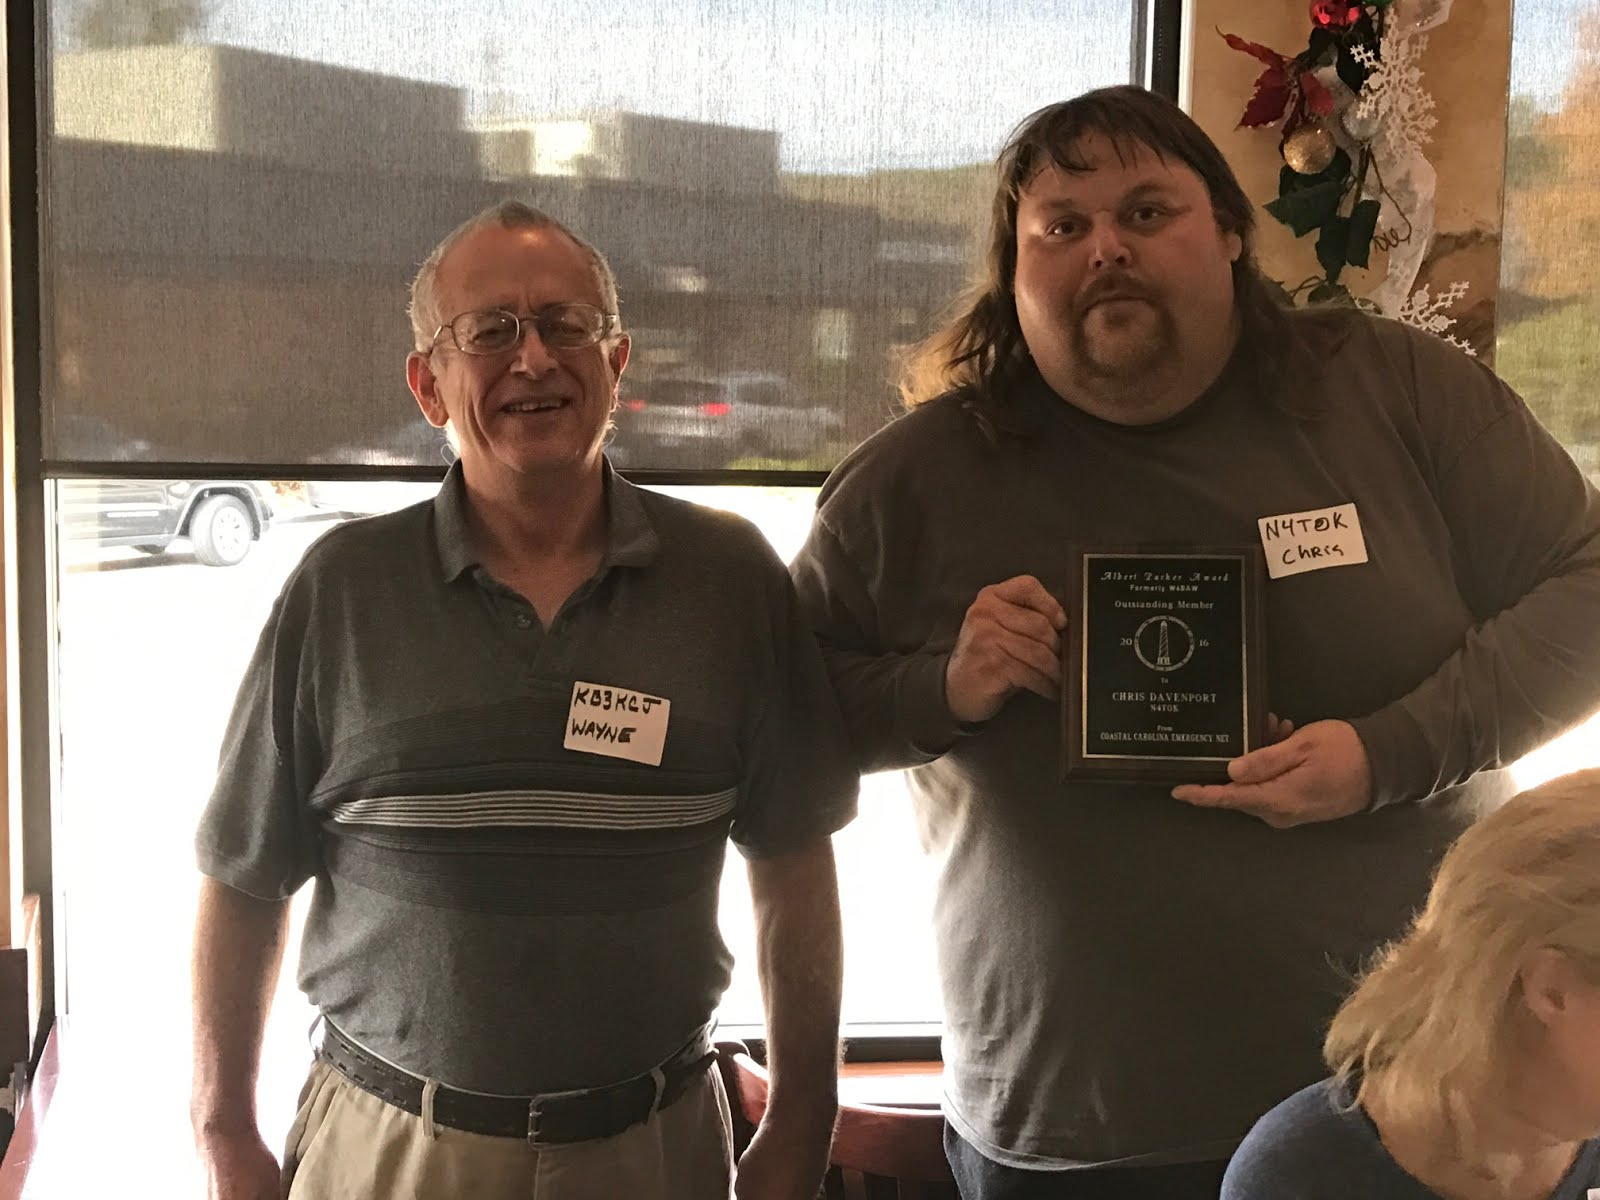 Chris Davenport N4TOK - 2016 Al Parker Award Winner